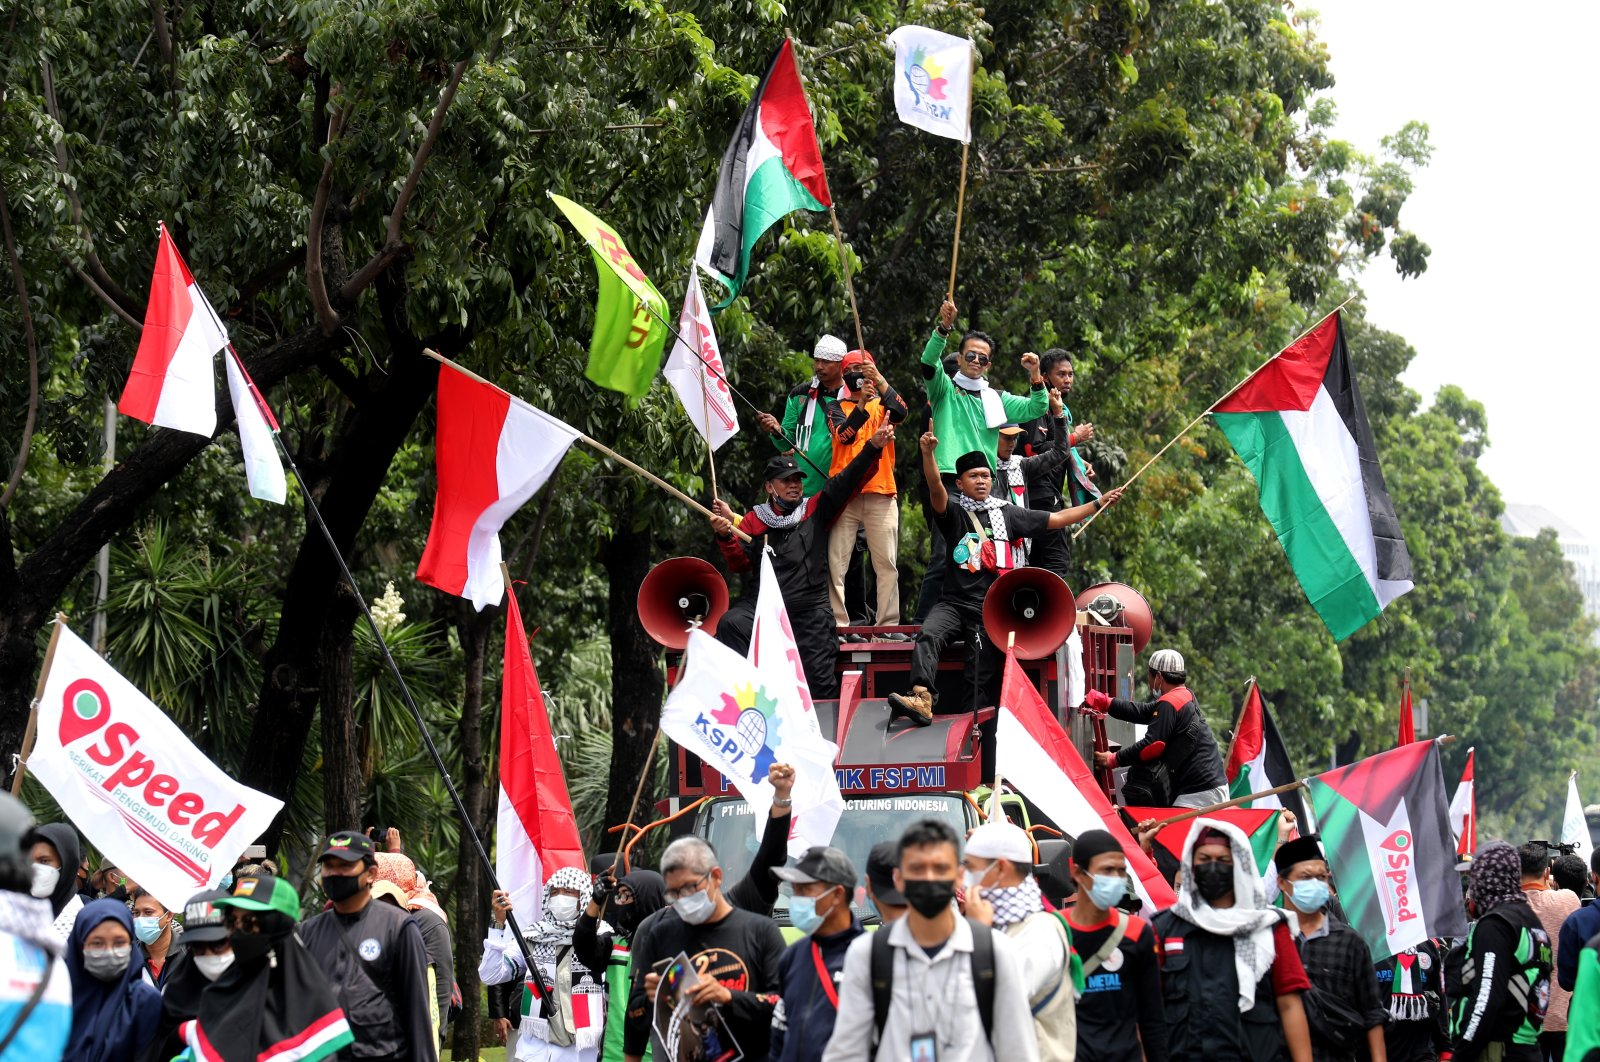 Indonesian workers wave the flags of Indonesia, Palestine and of Indonesian union confederations during a demonstration in Jakarta, Indonesia, May 18, 2021. (EPA Photo)